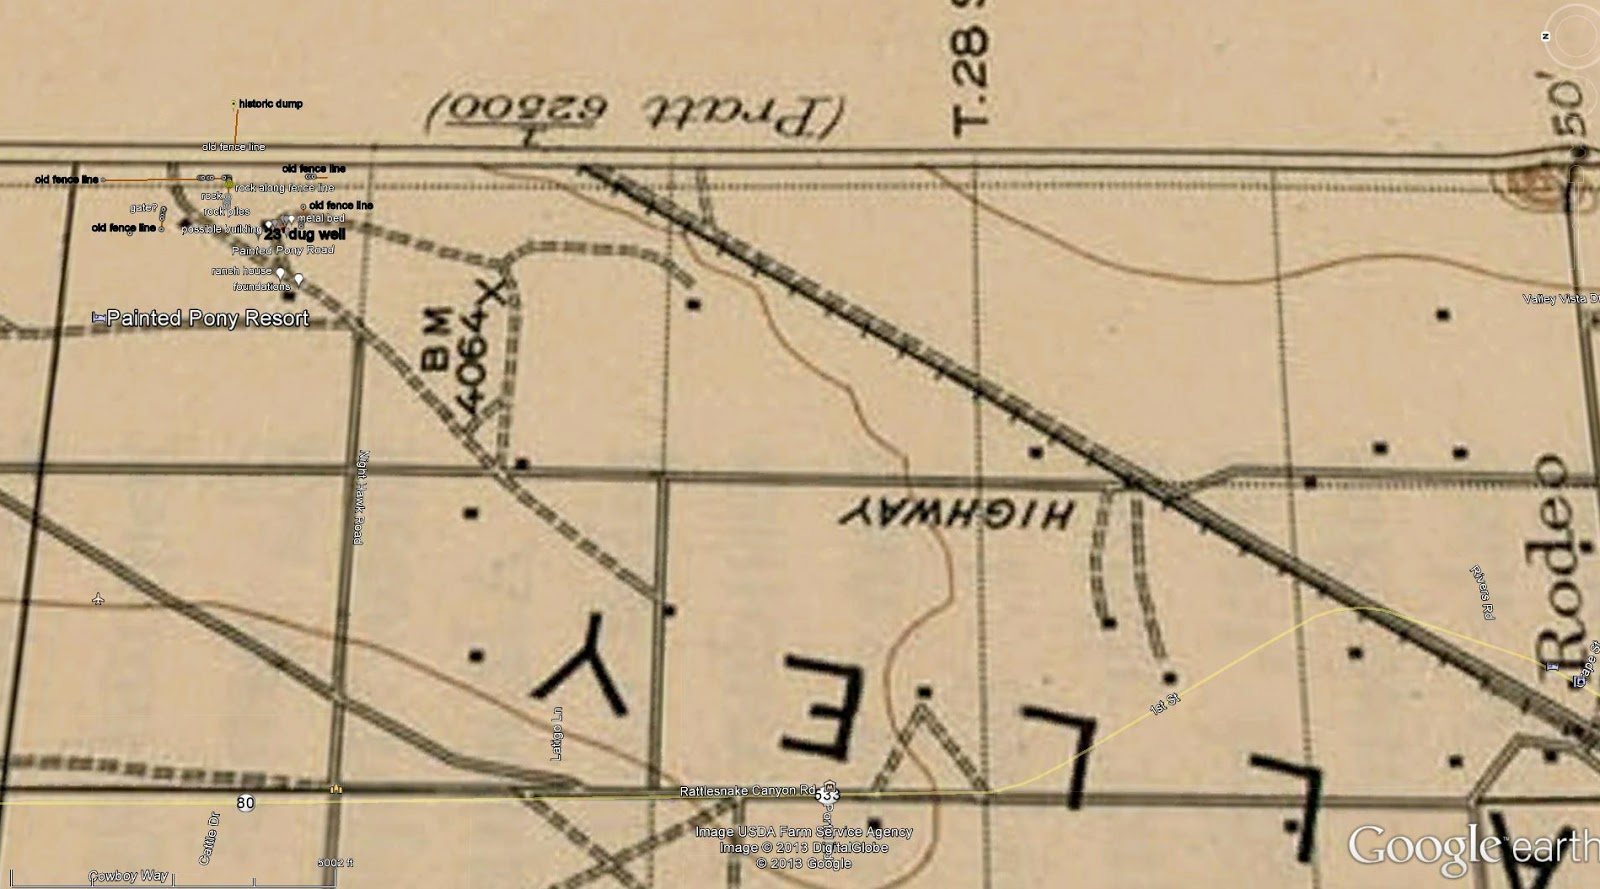 old topographic map of PPR